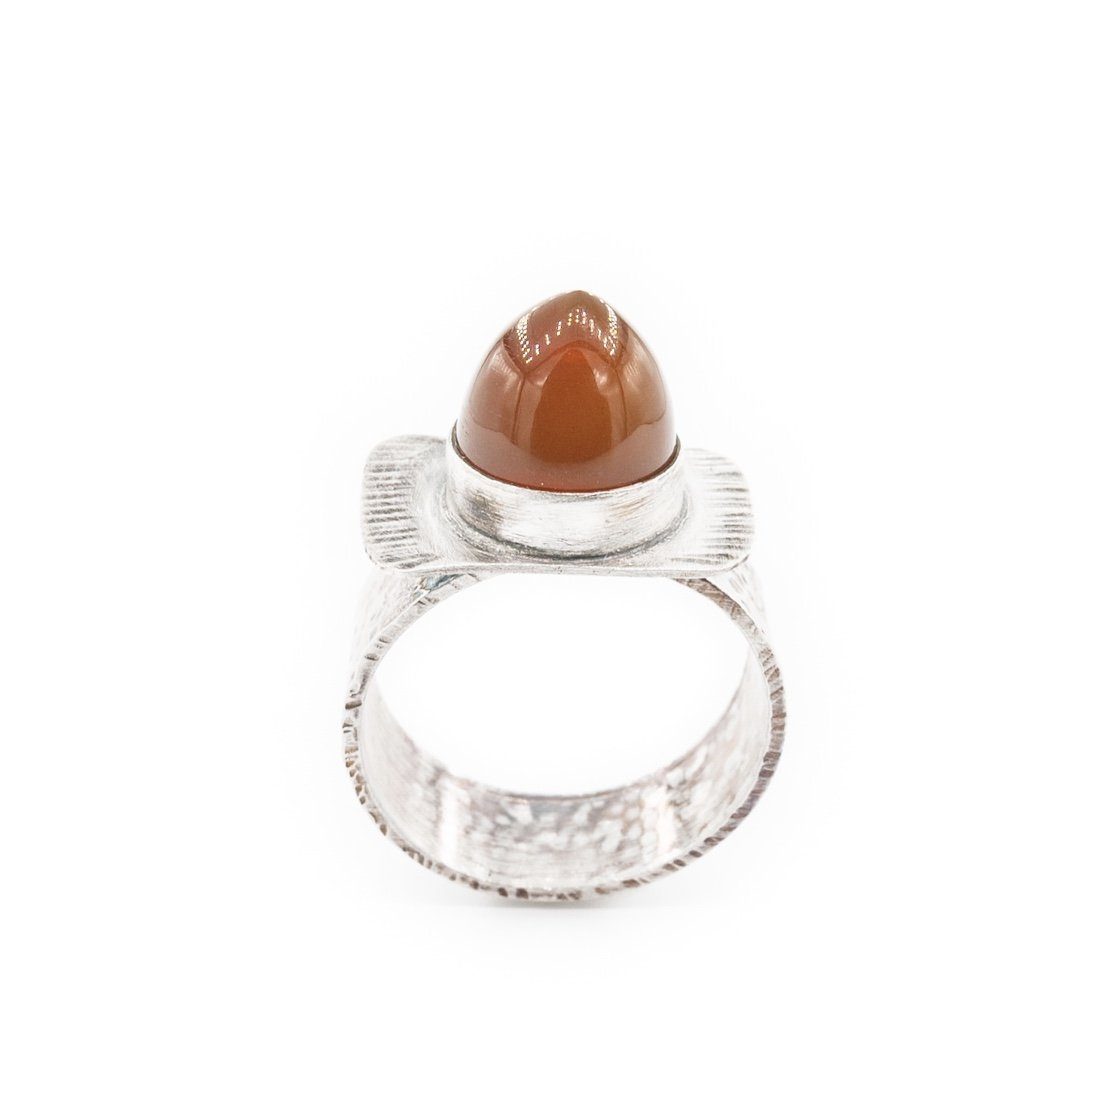 bullet shaped Oregon fire opal ring in oxidized silver by Original Sin Jewelry